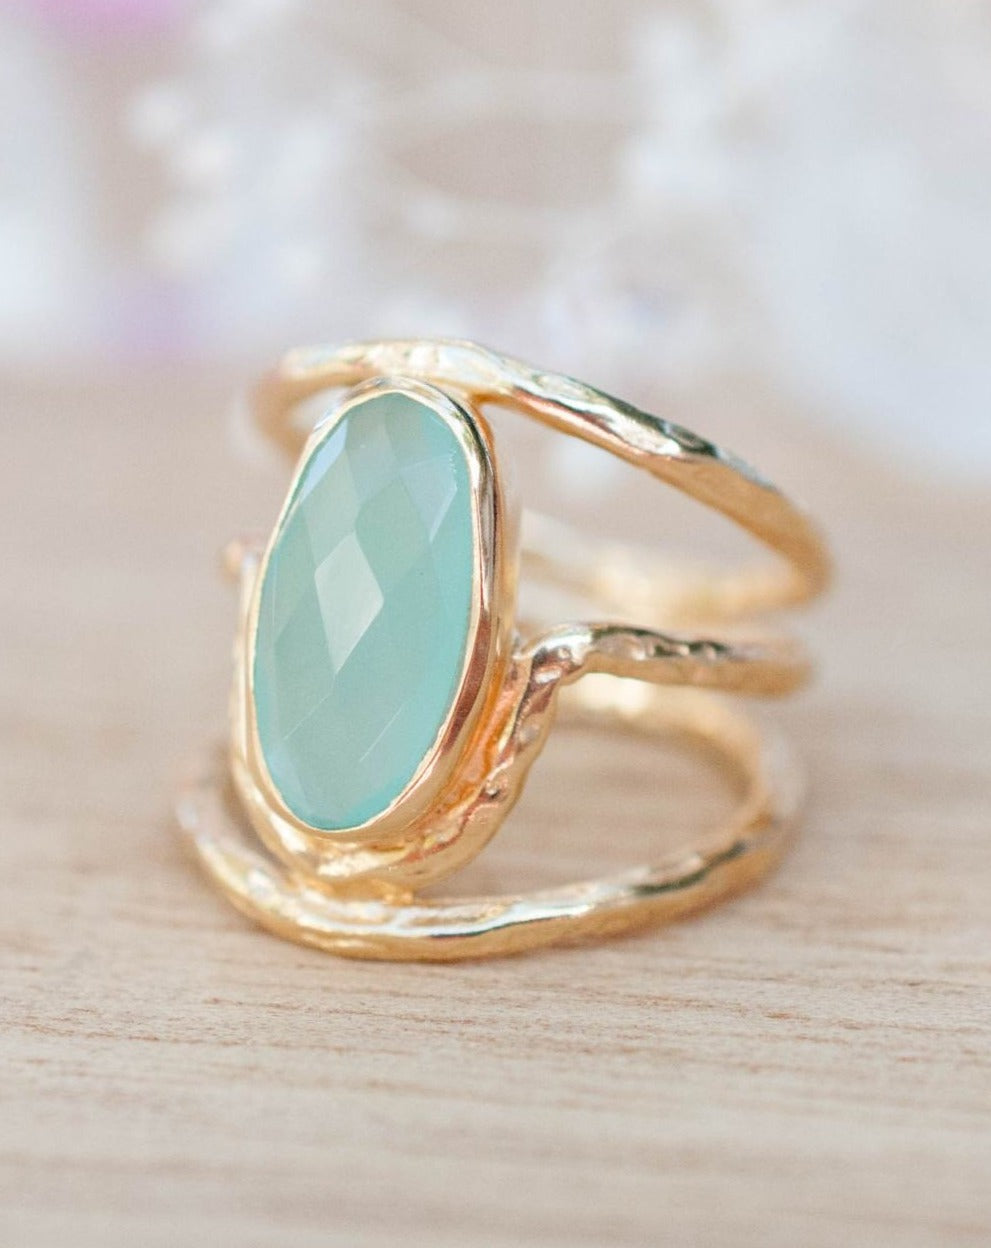 Gold Plated 18k Aqua Chalcedony * Gemstone Ring * Handmade * Statement * Natural * Organic*Gift for her*Jewelry*Bycila*May Birthstone*BJR060